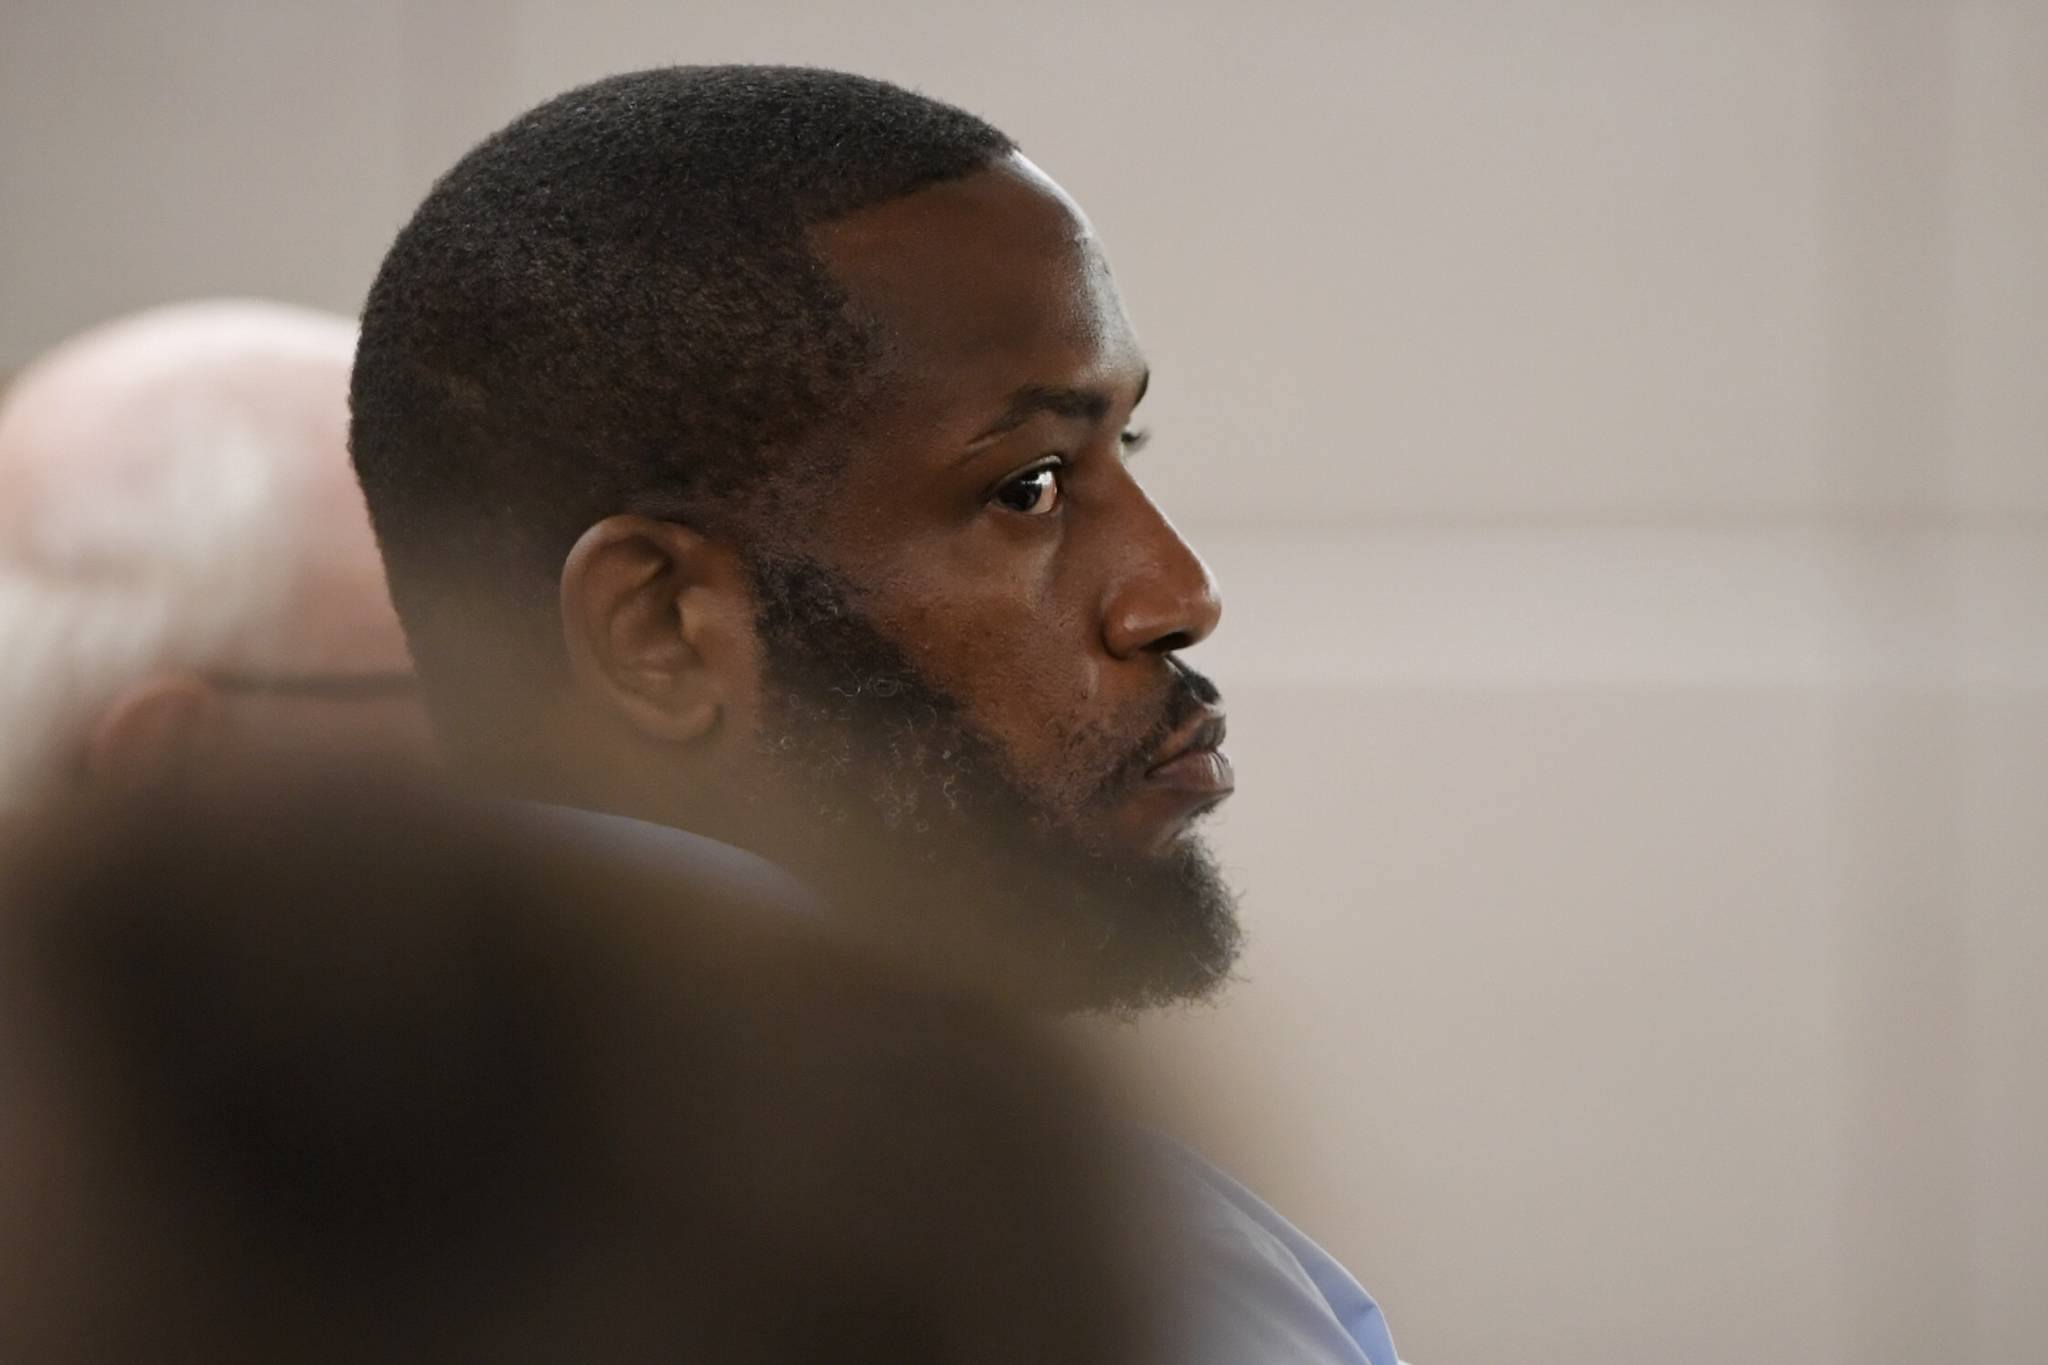 Laron Carlton Graham listens in Juneau Superior Court on Wednesday, Sept. 4, 2019, during his trial on two counts of first-degree murder for the November 2015 shooting deaths of 36-year-old Robert H. Meireis and 34-year-old Elizabeth K. Tonsmeire. (Michael Penn   Juneau Empire)